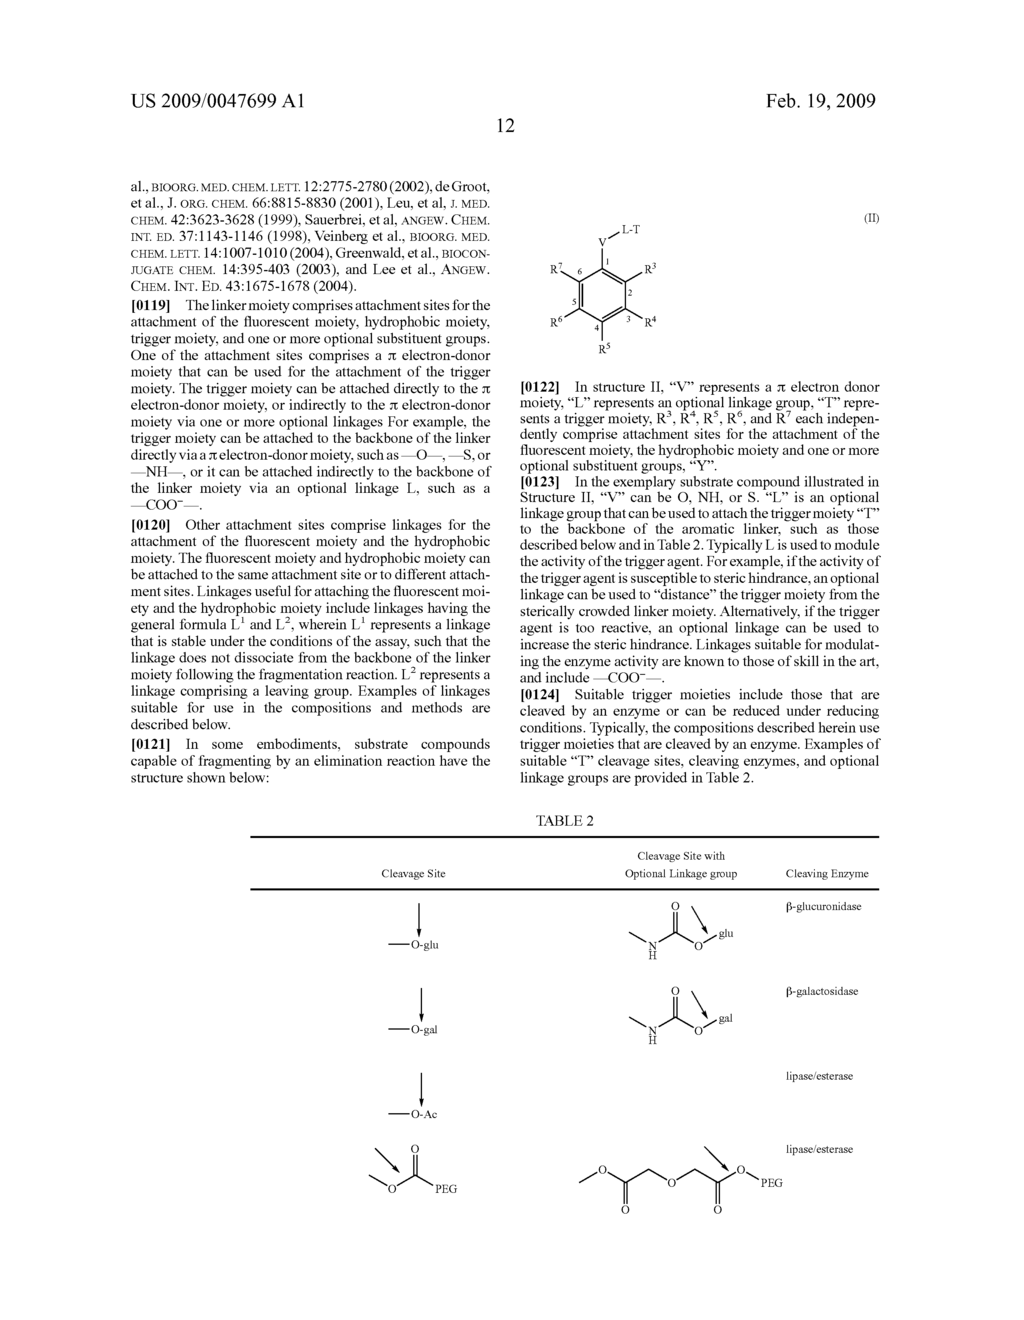 FLUOROGENIC ENZYME ACTIVITY ASSAY METHODS AND COMPOSITIONS USING FRAGMENTABLE LINKERS - diagram, schematic, and image 34